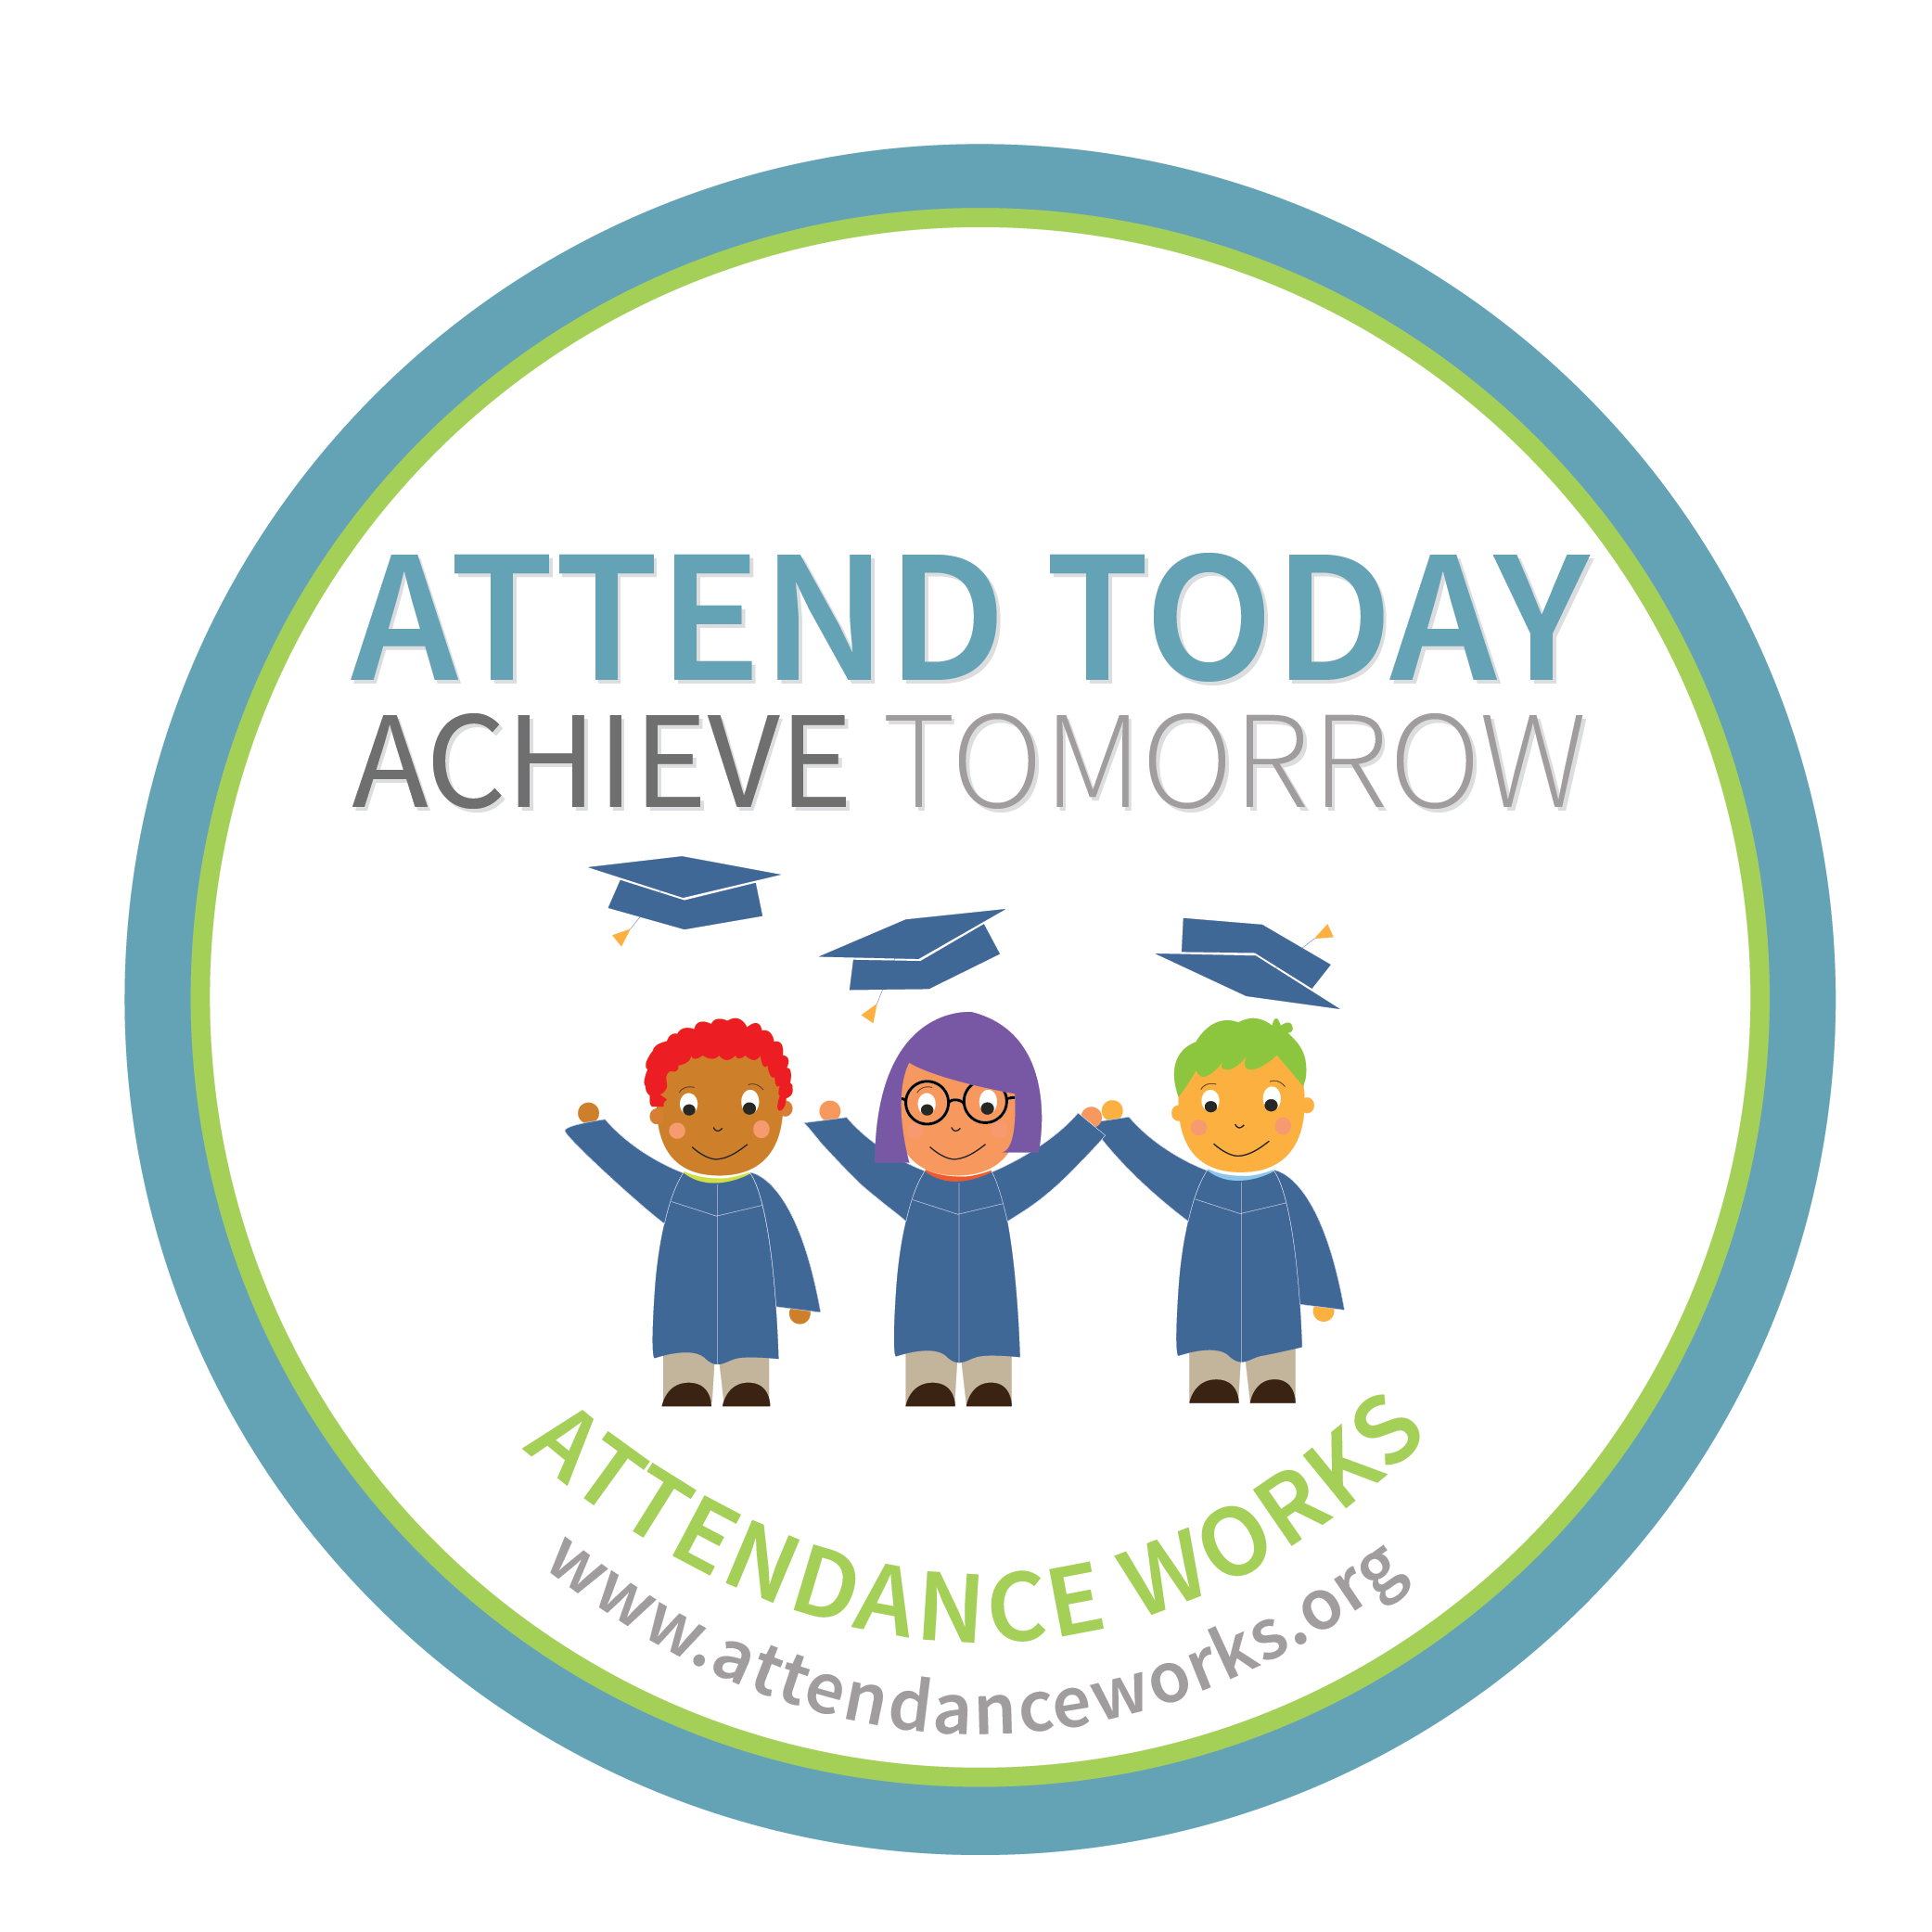 Attend today, Acheive tomorrow badge